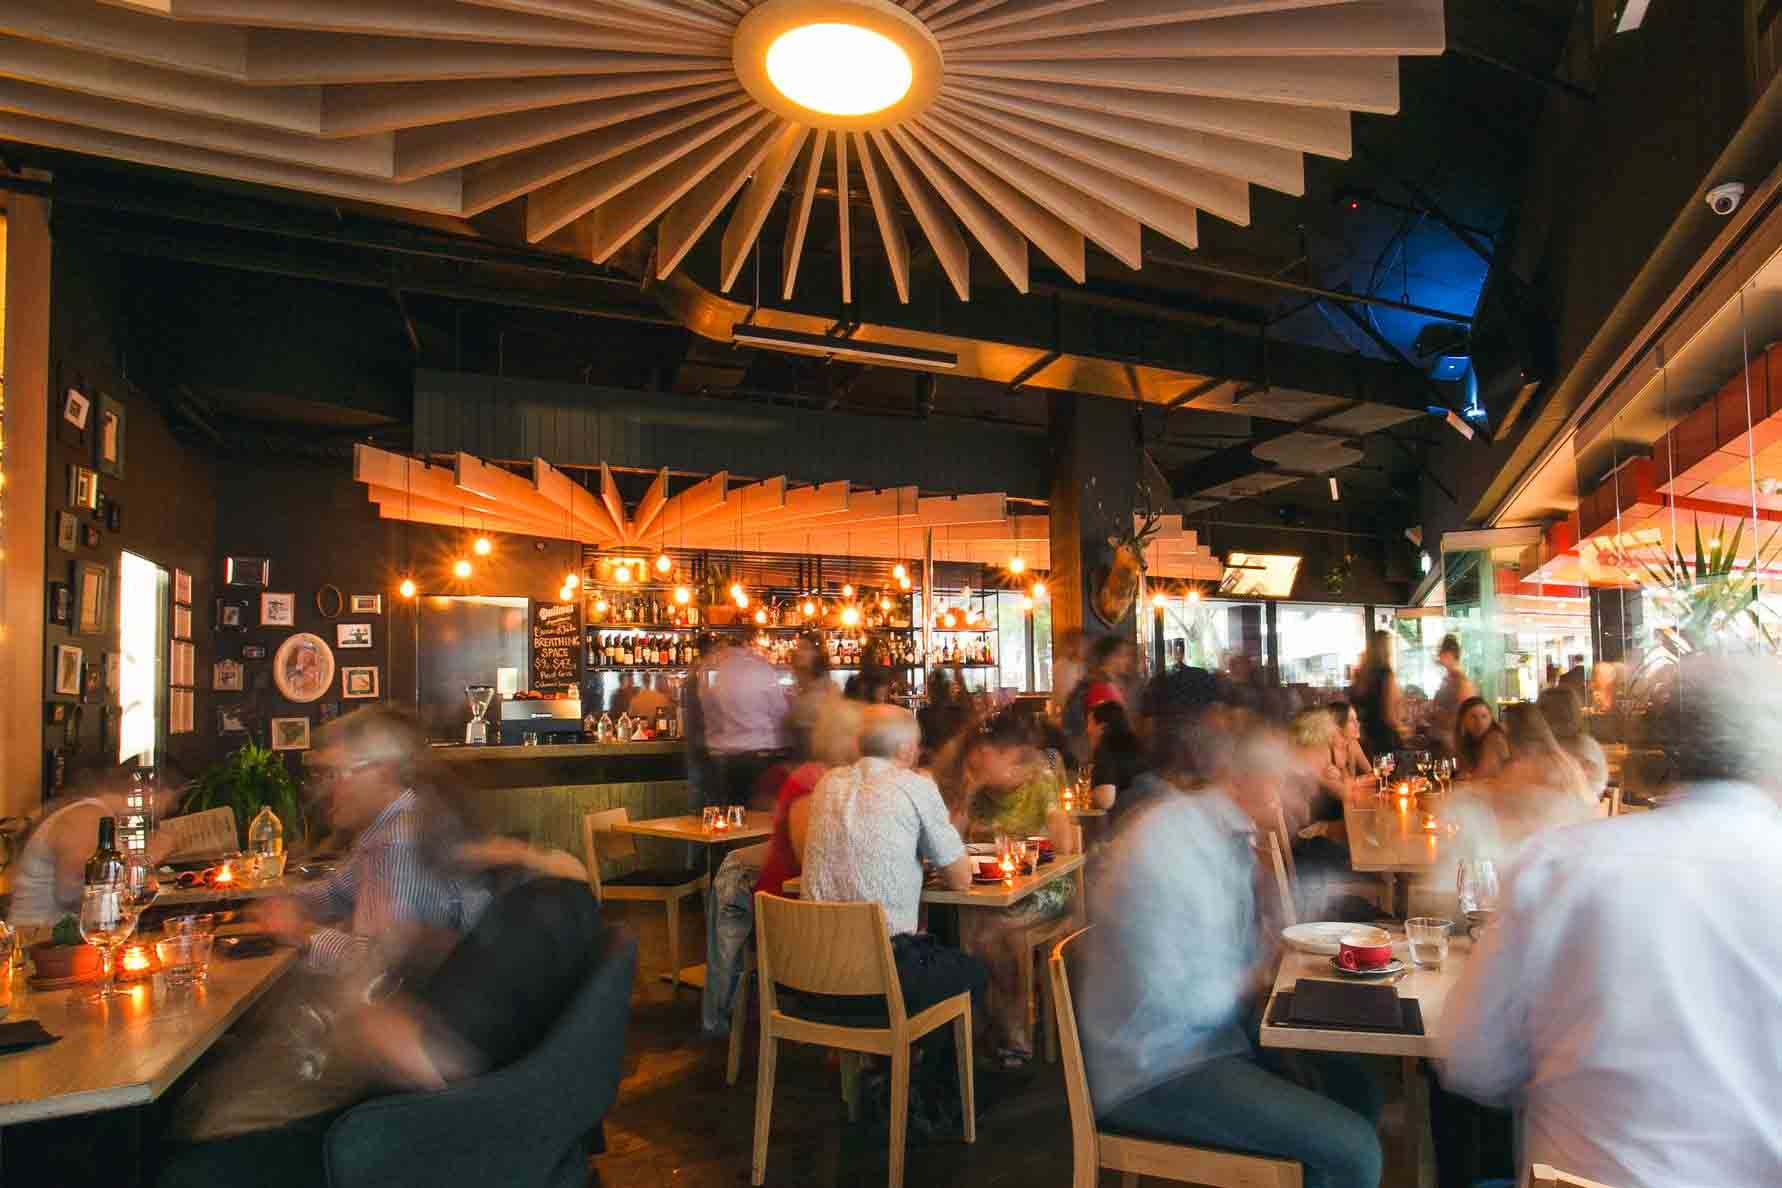 Public House Kitchen & Bar - Group Dining Restaurants Perth